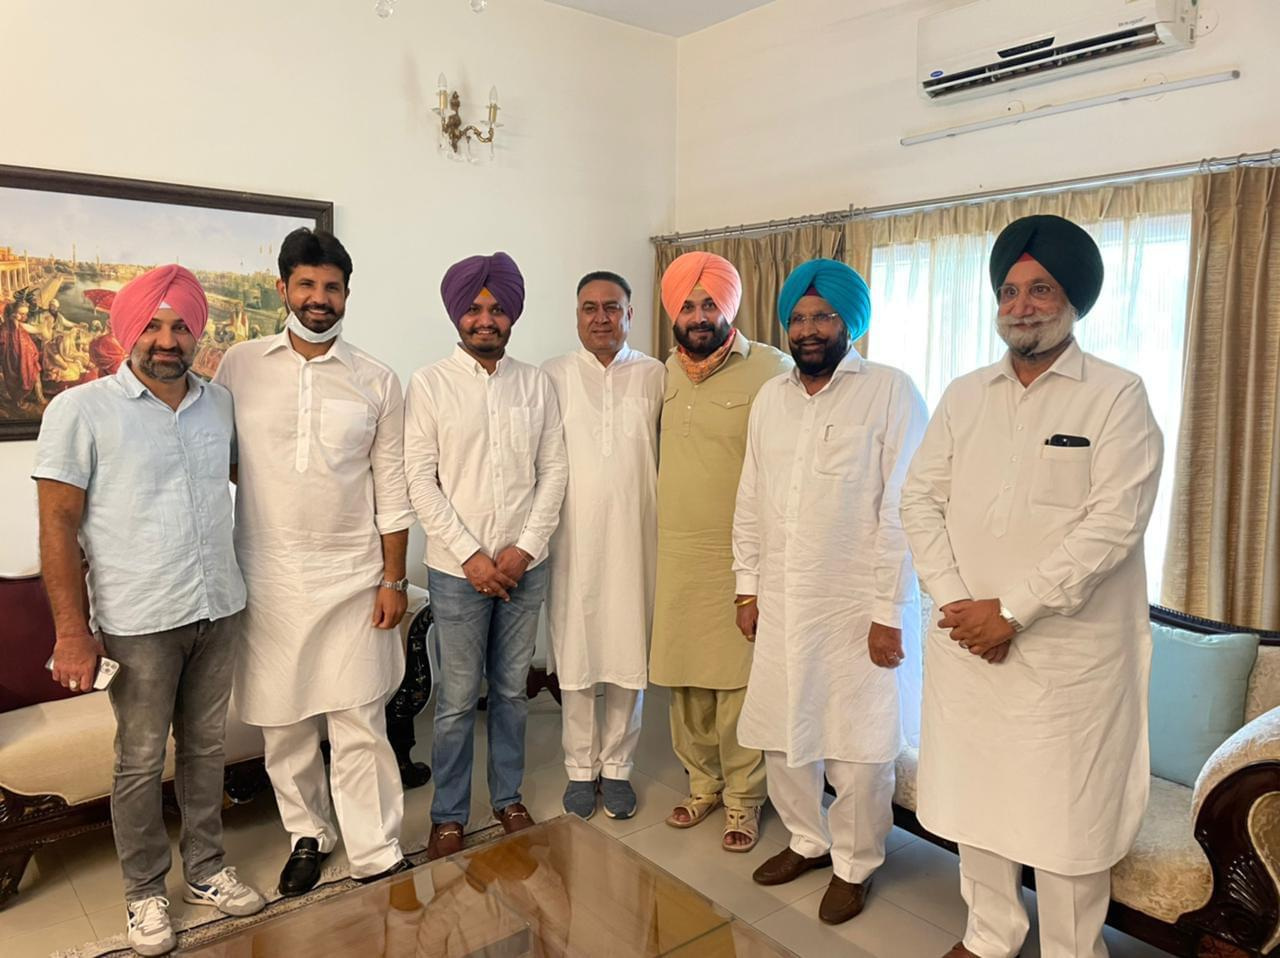 Tipped to be Punjab Congress President, Navjot Singh Sidhu meets Sunil Jakhar, other Congress leaders